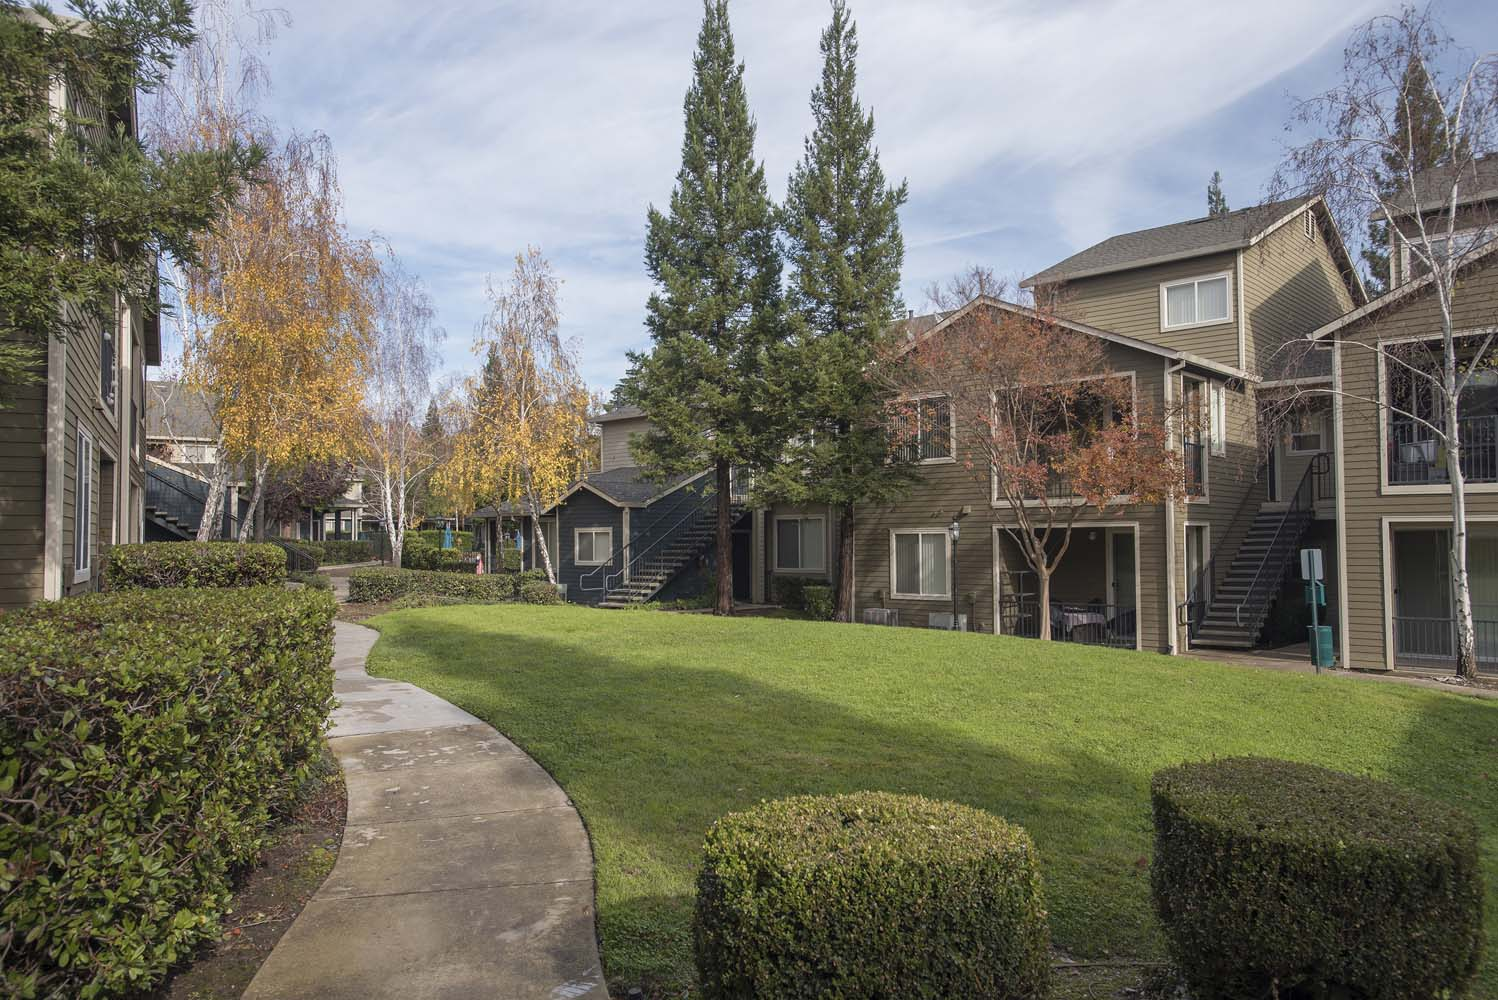 Green Space Walking Trails at Atwood Apartments, California